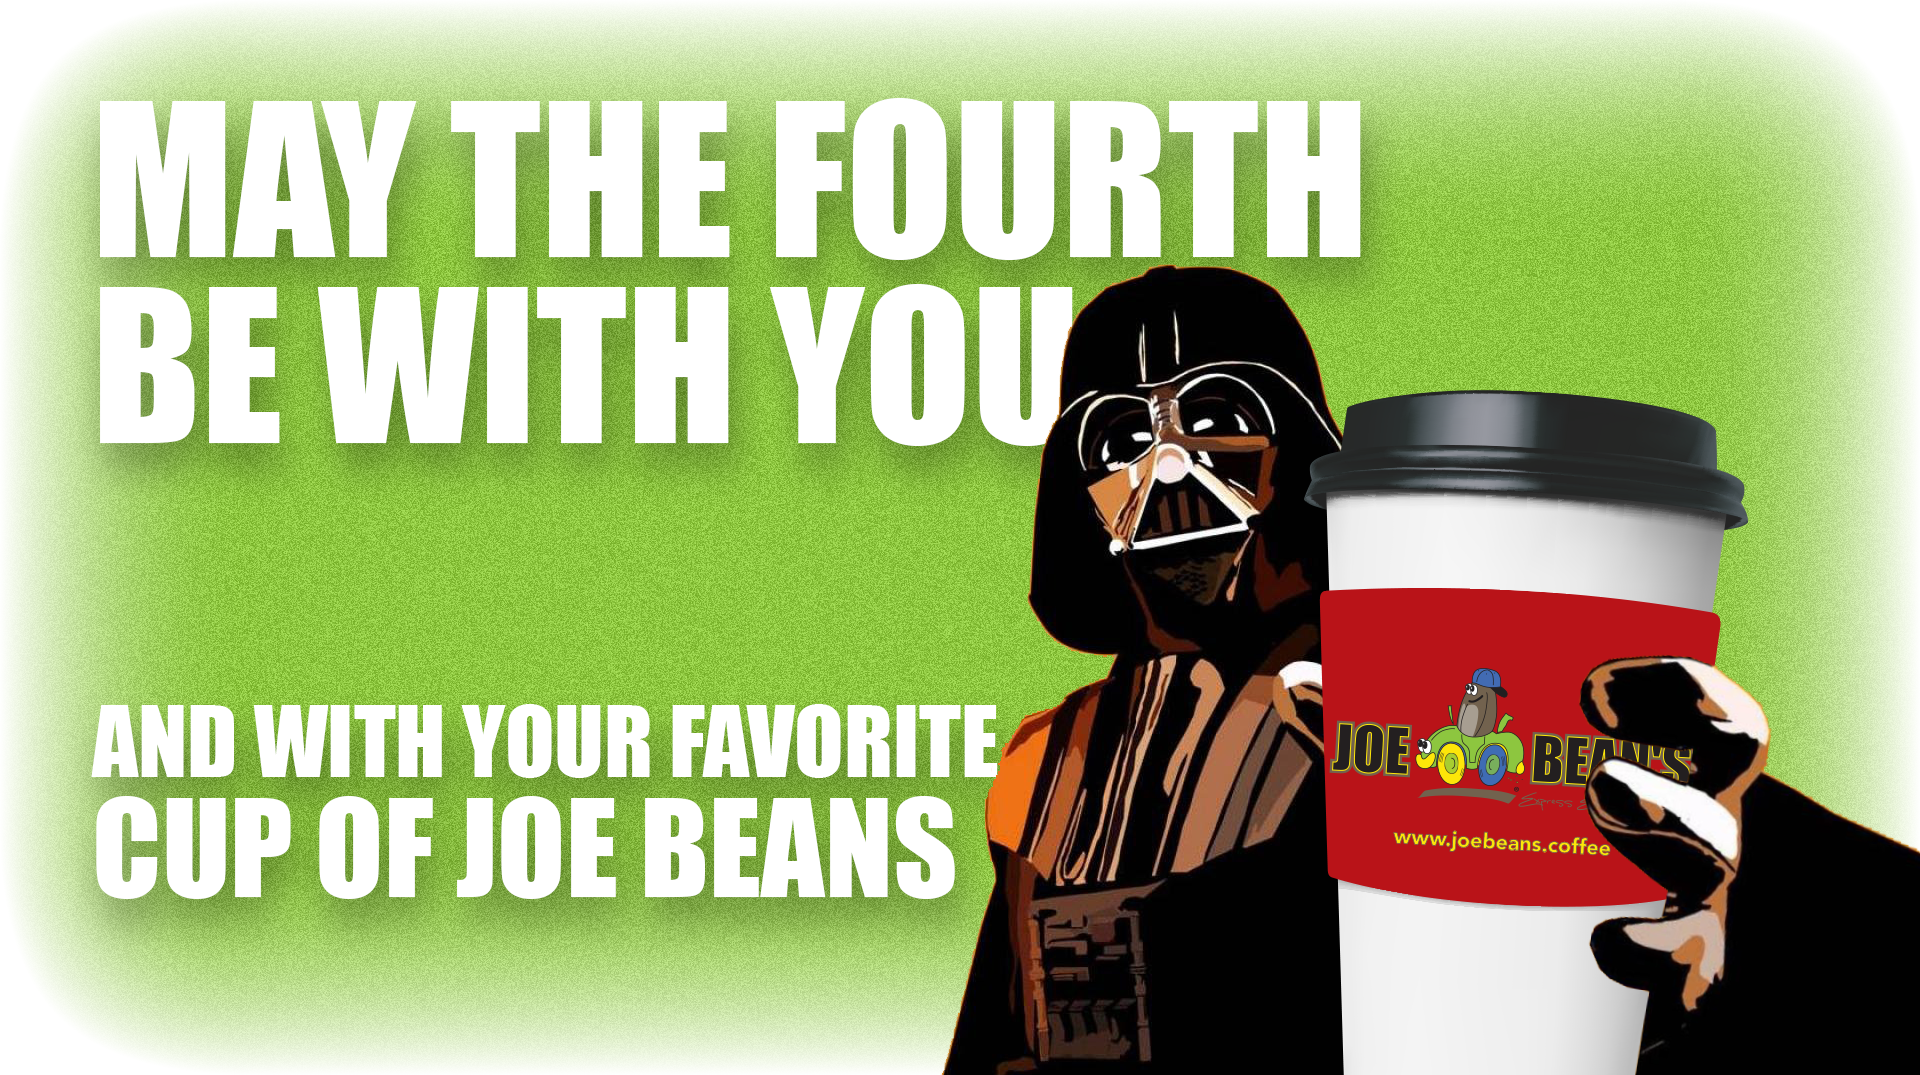 darth vader holding JB coffee cup.png